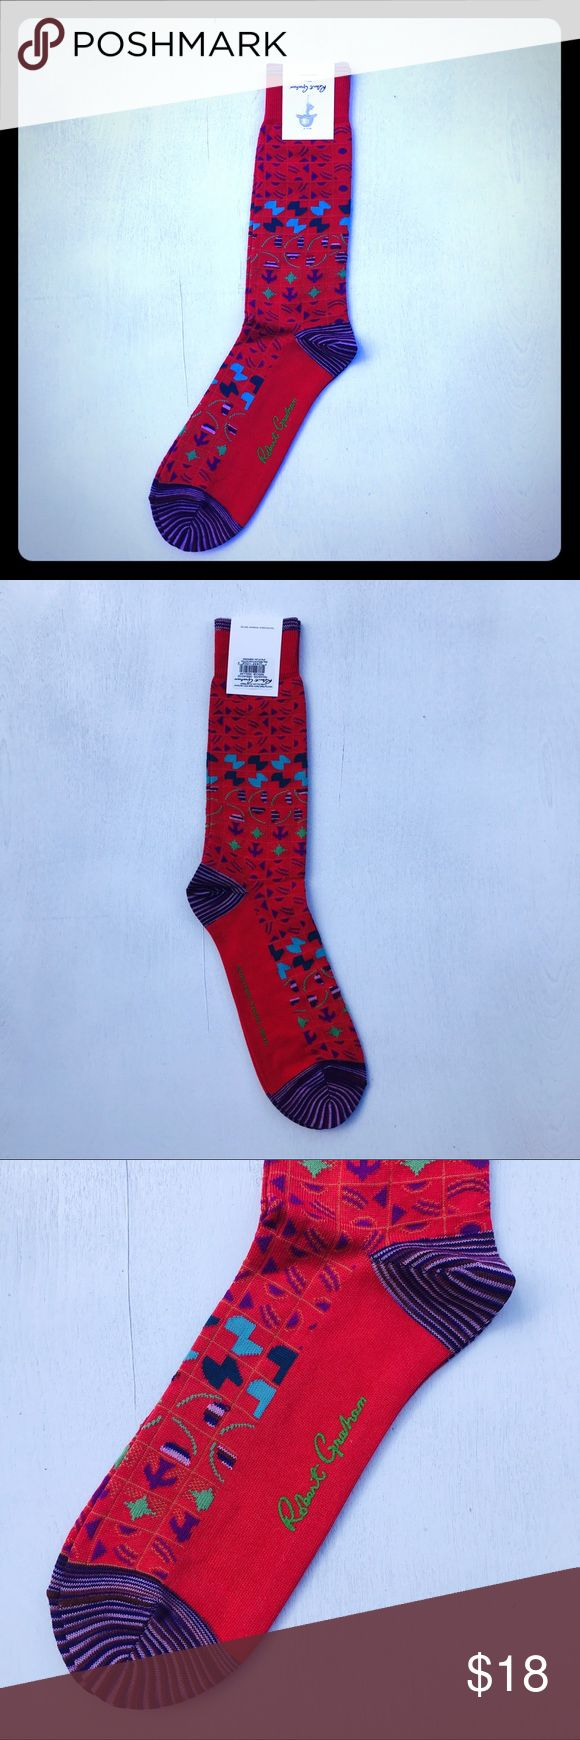 """Robert Graham Red Aztec Dress Socks This pair of authentic new with tags Robert Graham socks are a size regular (fits approximately 9-12 shoe size) and feature eye-popping color combinations and a stylish aztec design.  Signature Robert Graham contrast space dye yarn on tip, heel and toe as well as the designer logo on the side.  The bottom of the sock reads: """"Knowledge Wisdom Truth"""".  62% Cotton, 37% Nylon, 1% Spandex Style Name: Perkins Machine Wash Made from Peruvian Pima cotton Color…"""